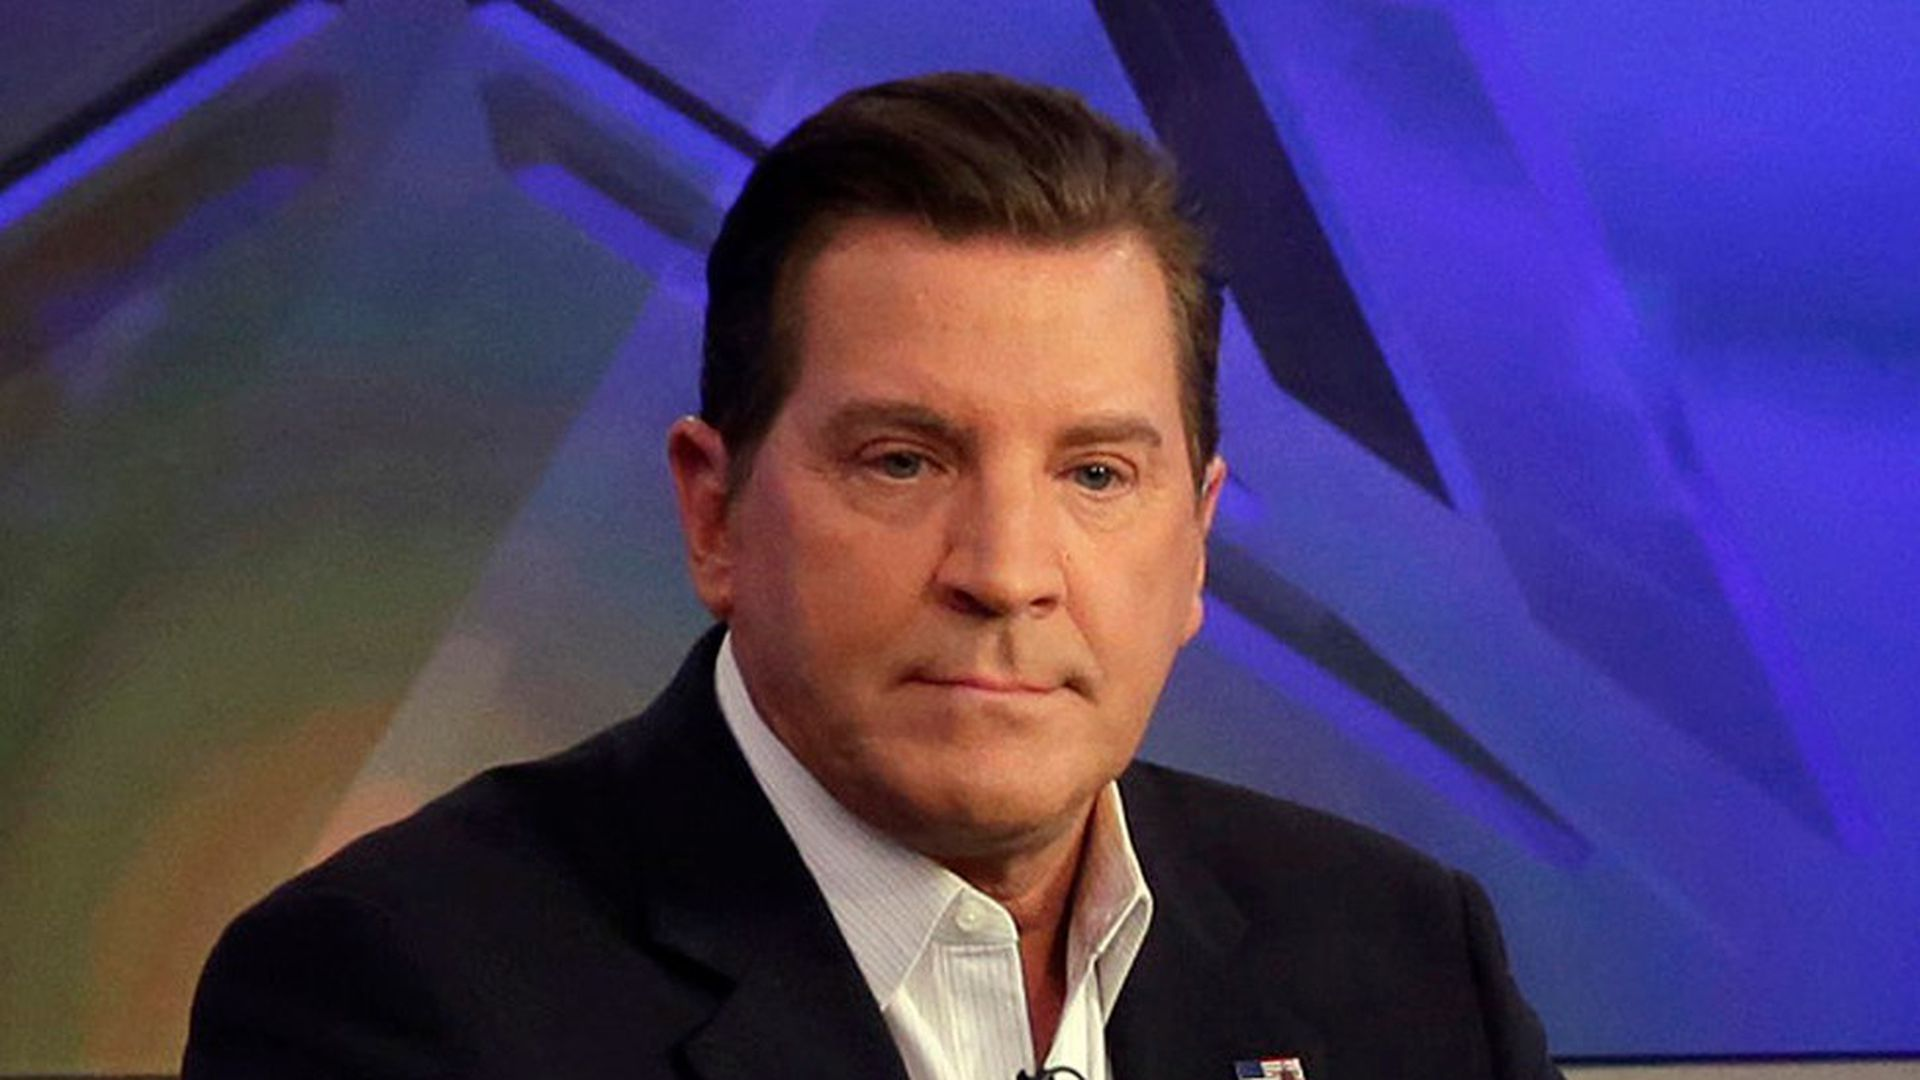 Another Fox News host departs over sexual harassment reports